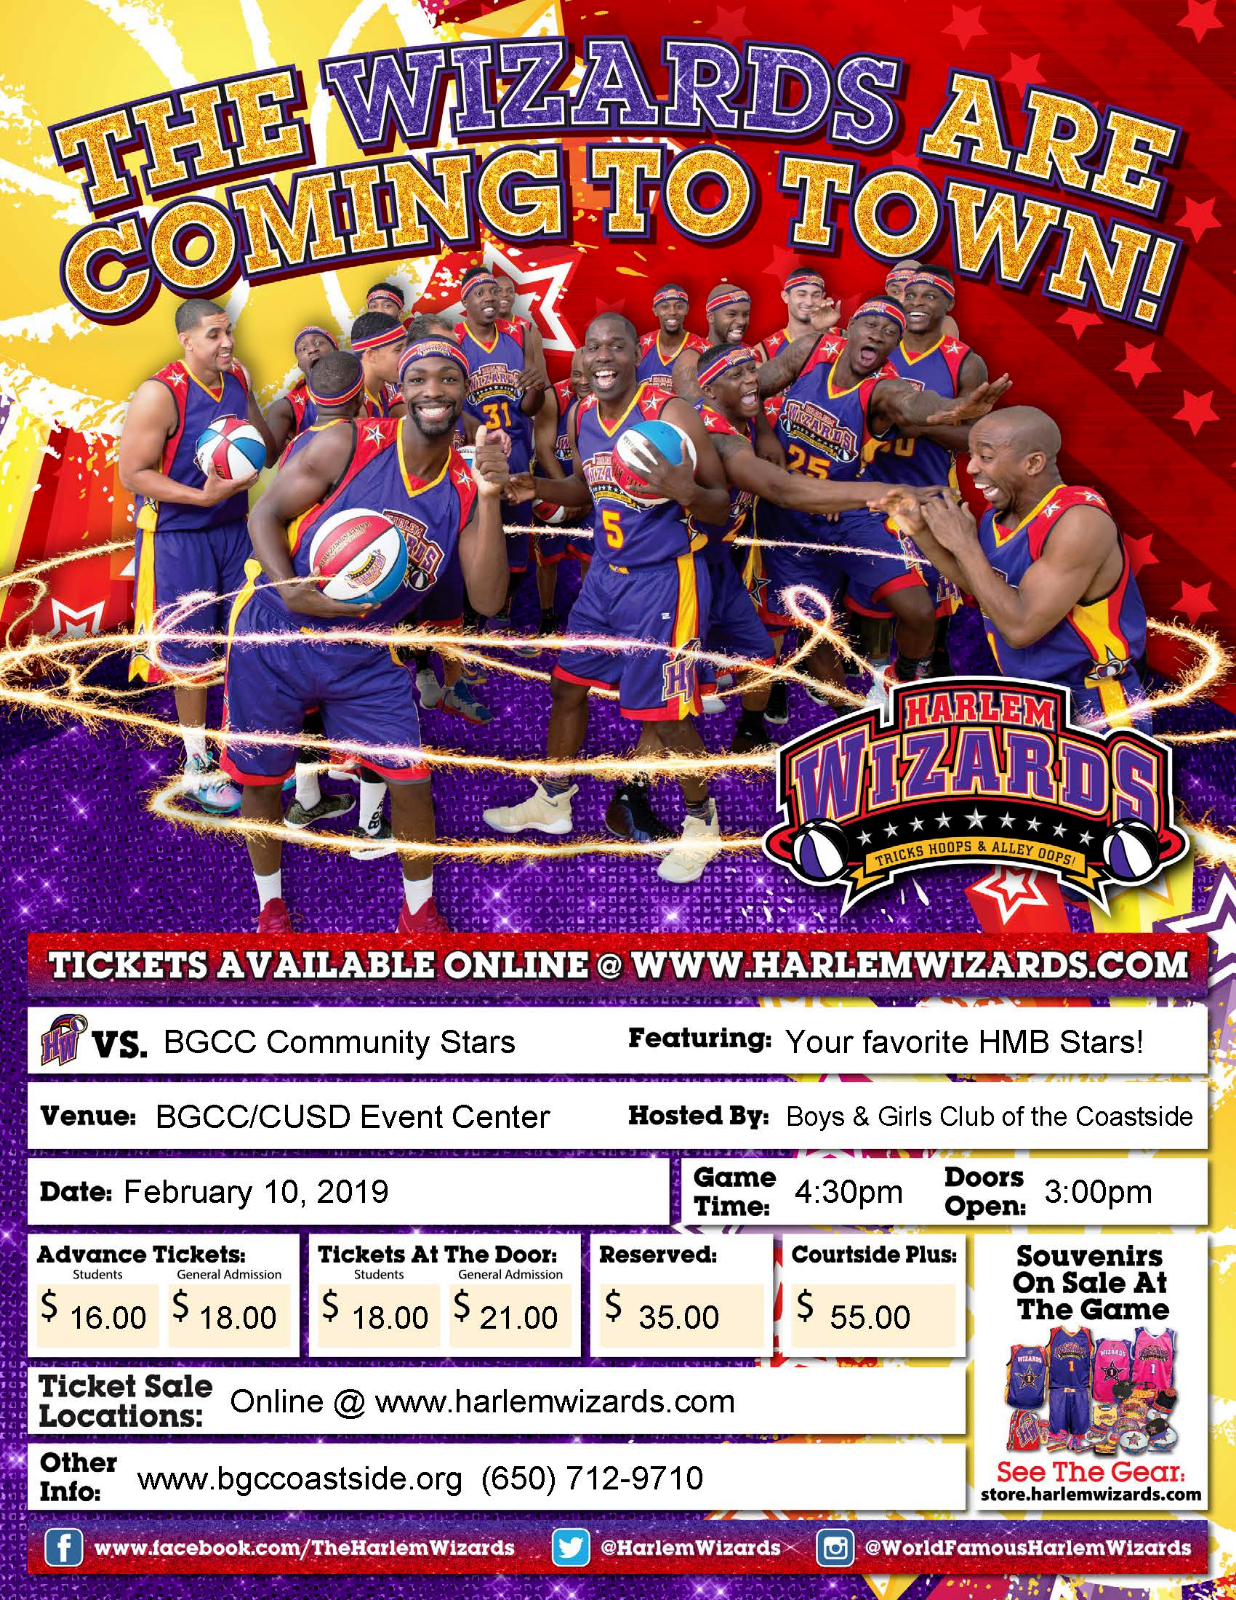 The Harlem Wizards are coming to HMB! Please join us at The Boys and Girls Club of the Coastside for a 4:30 PM game. We hope to see you at the show!  Date: February 10th, 2019  Doors open at 3:00 pm and the game starts at 4:30 pm